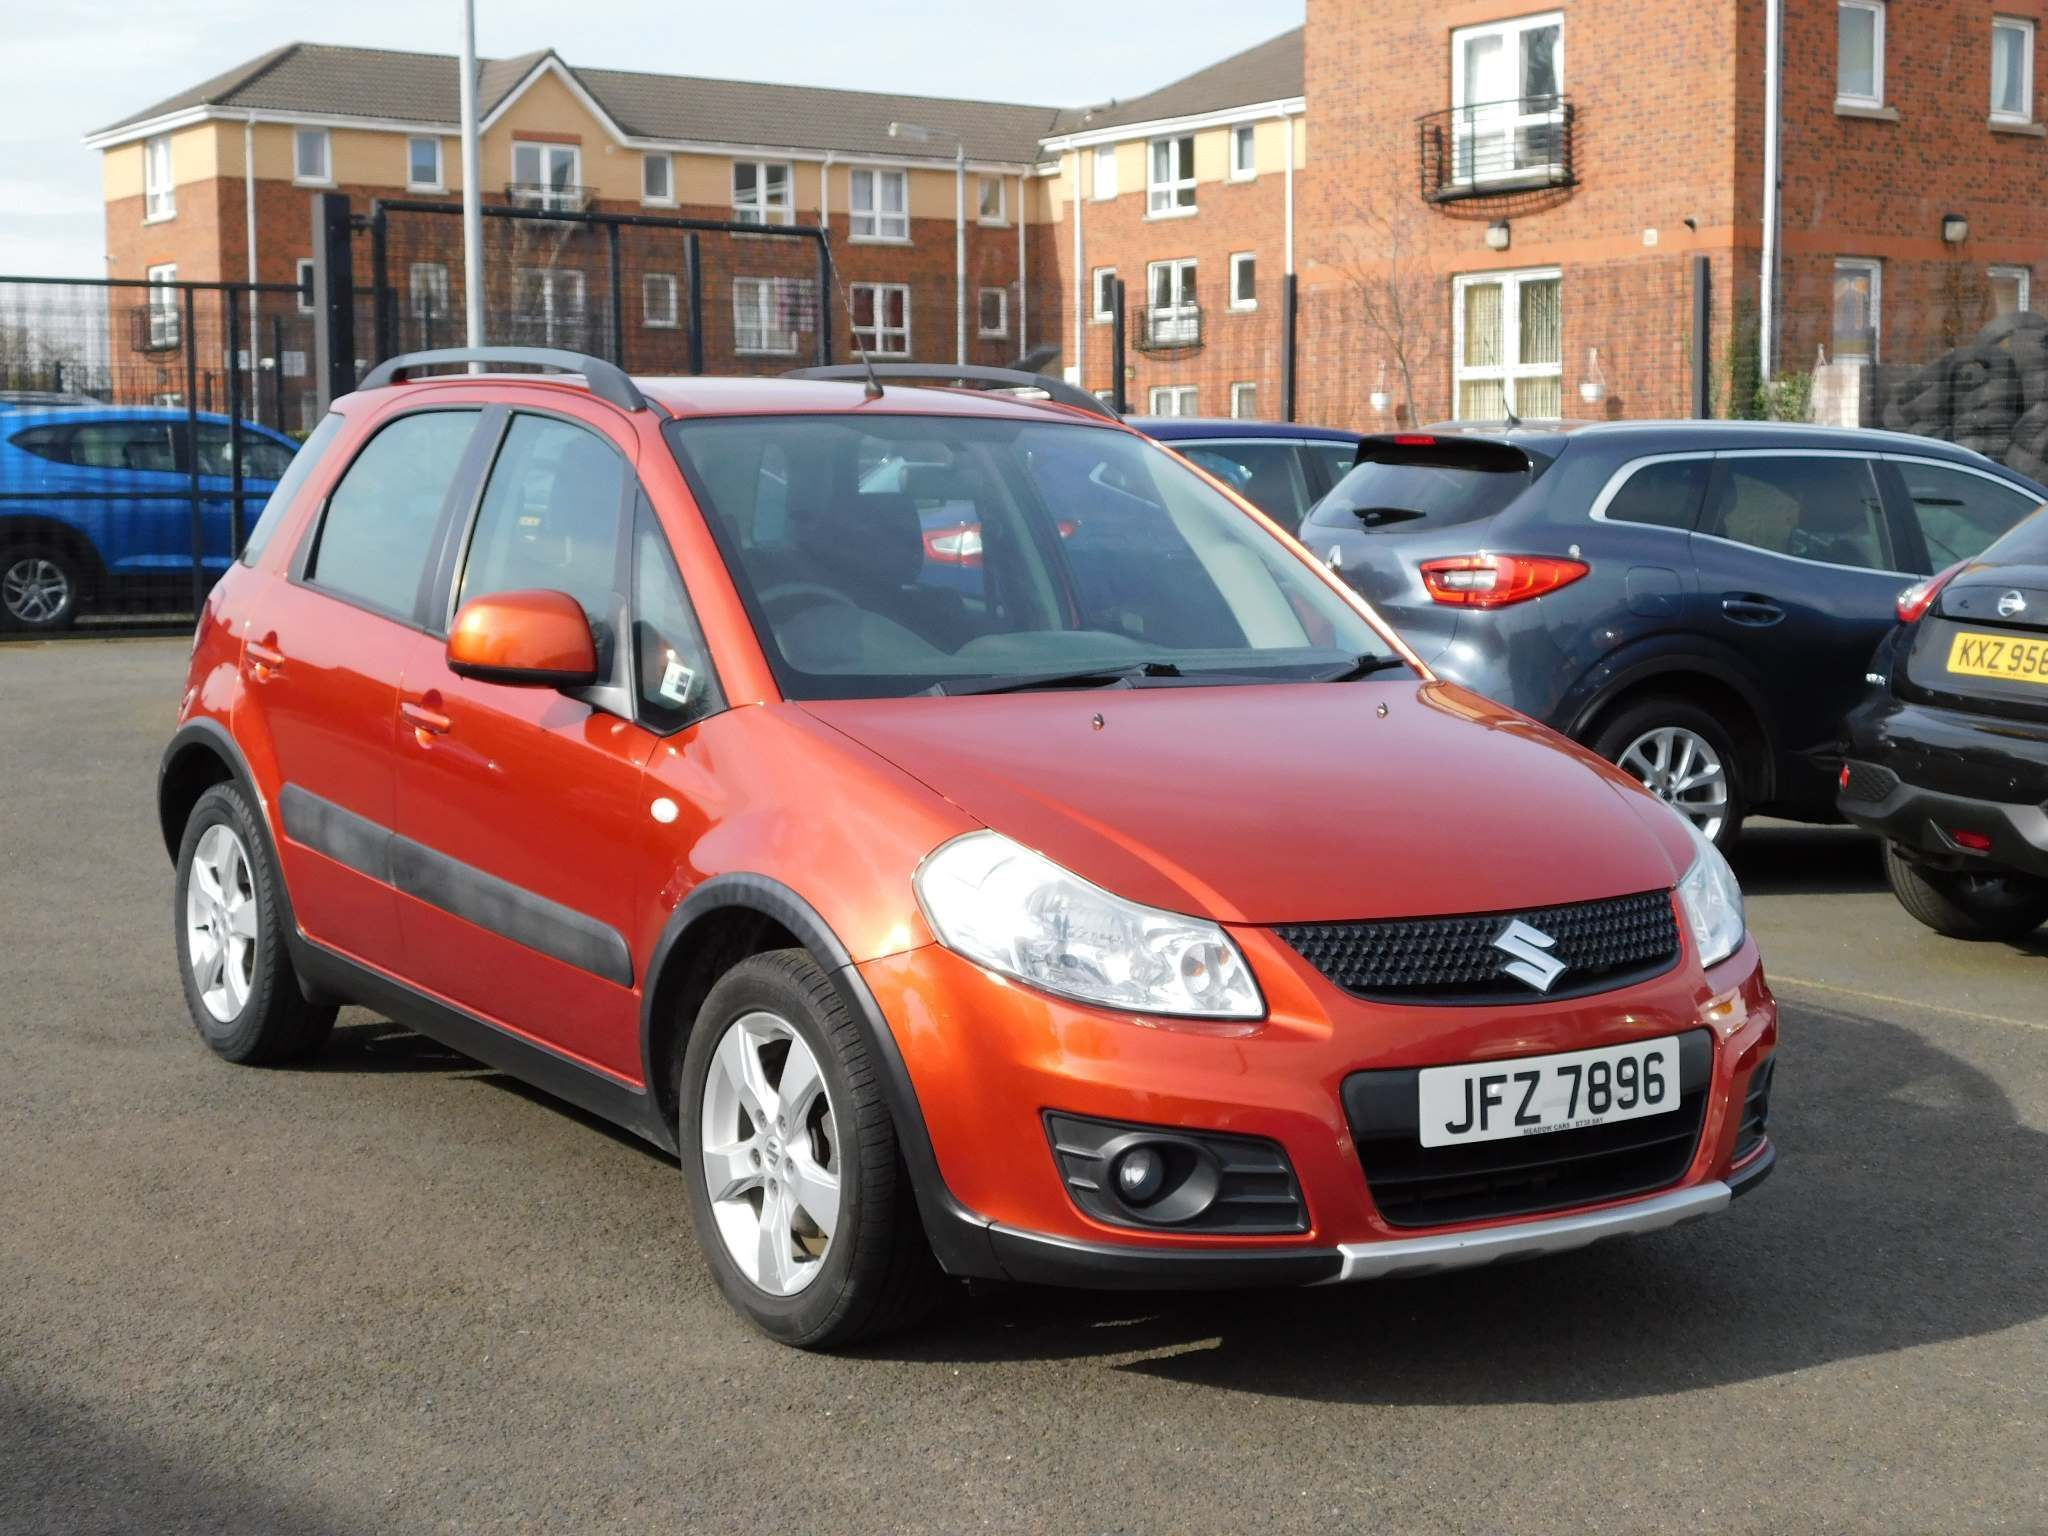 2012 SUZUKI SX4 1.6 SZ4 Petrol Manual just in – Meadow Cars Carrickfergus full